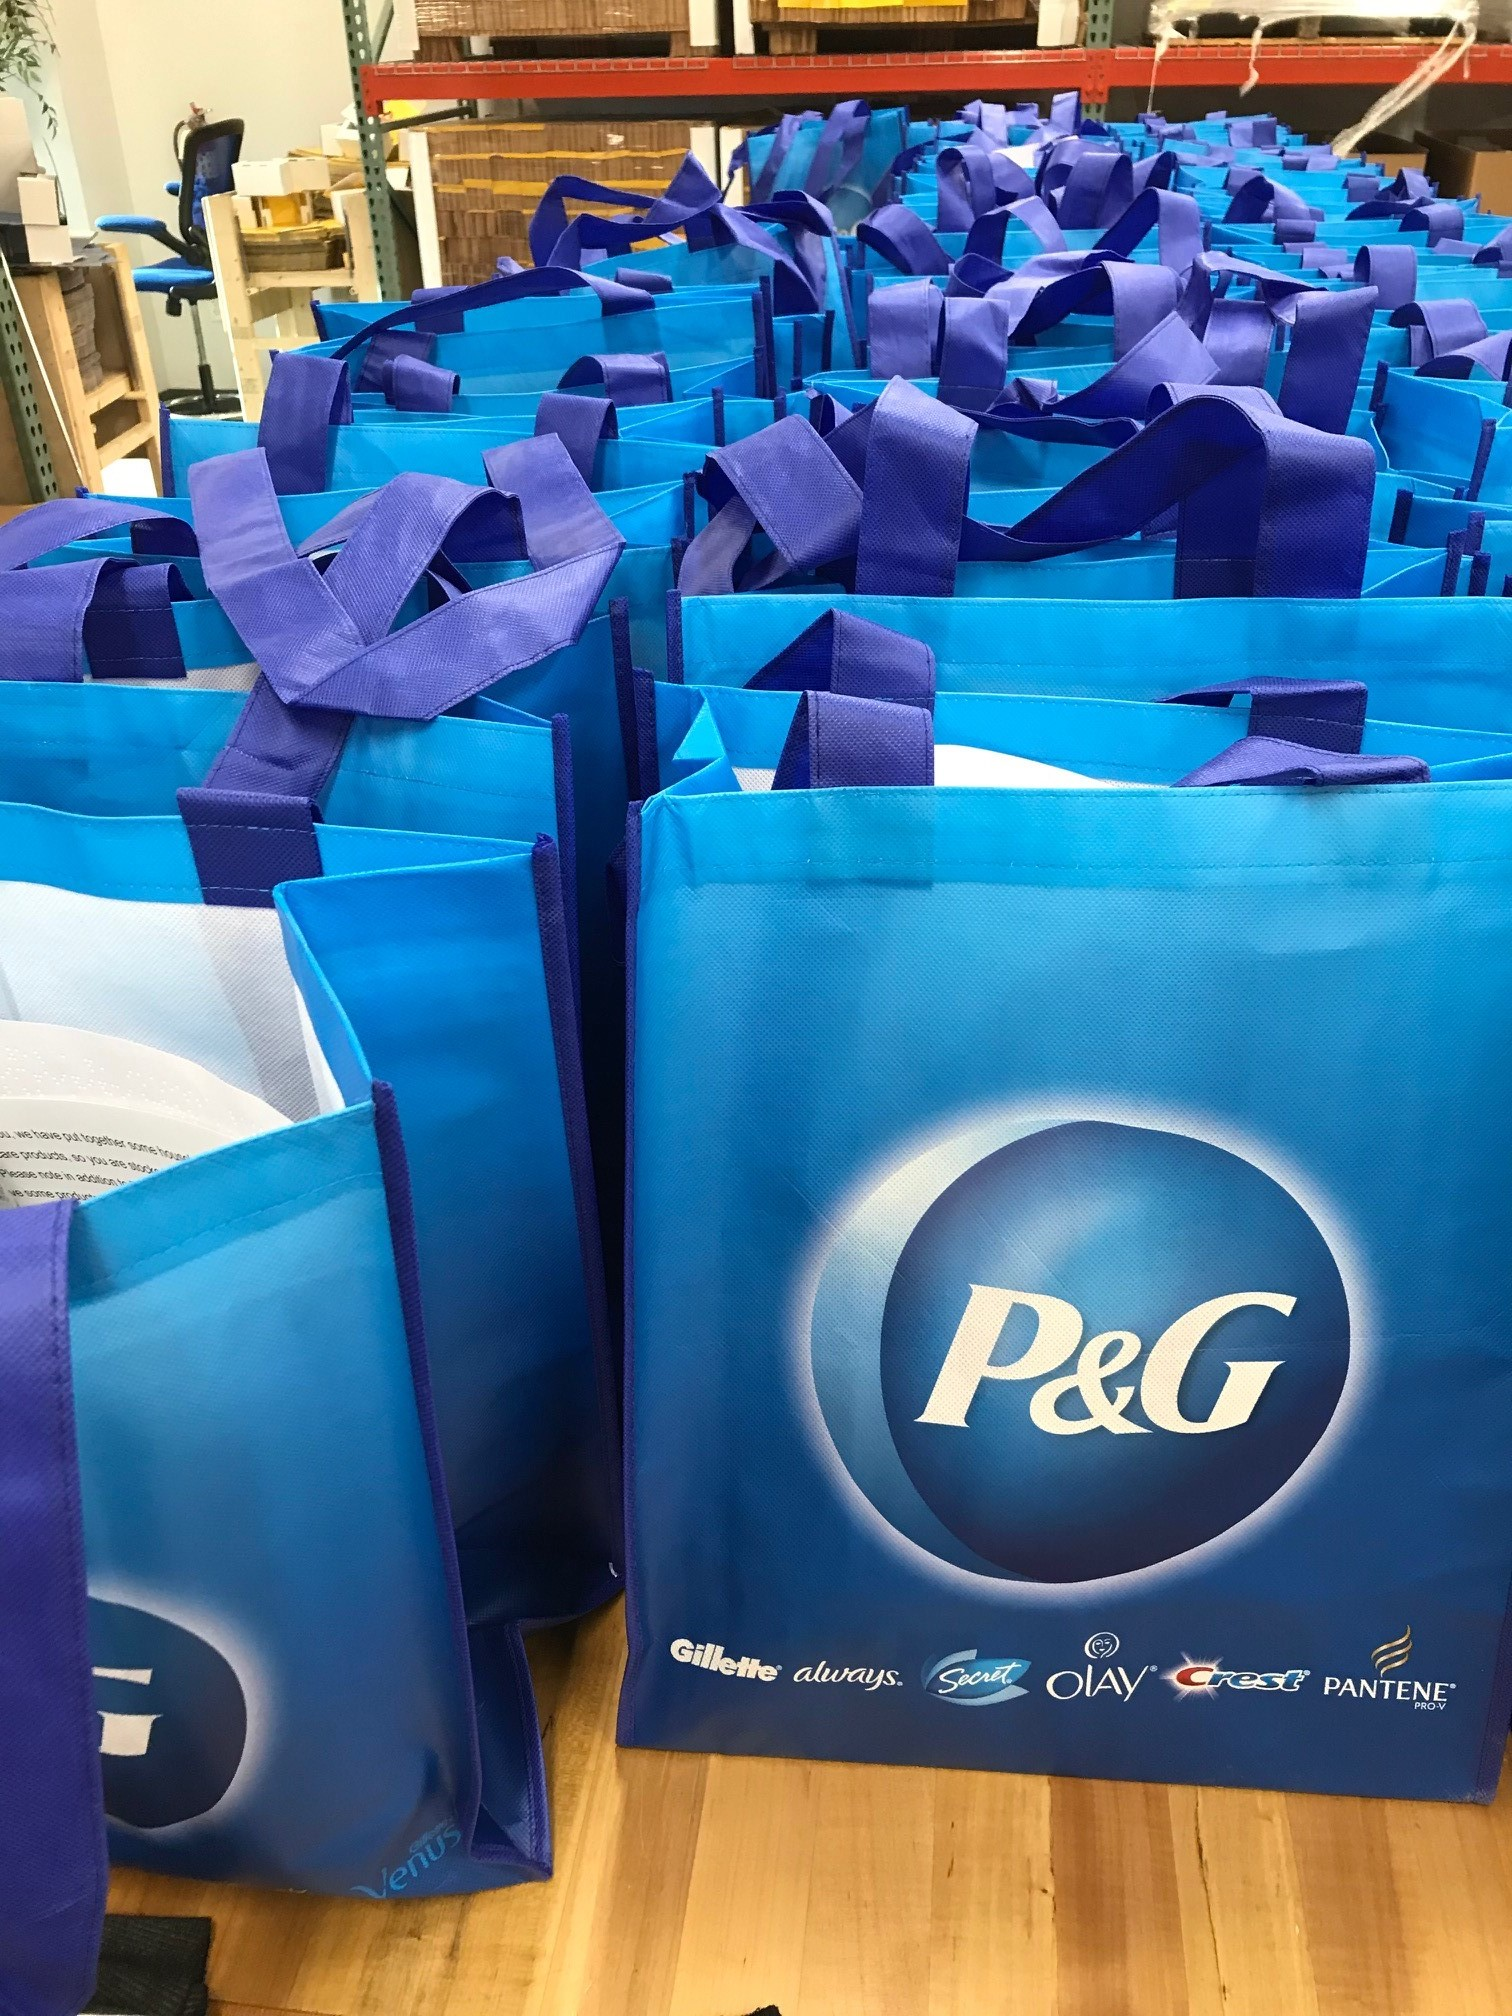 Image of P&G branded tote bags containing home cleaning and personal care products.